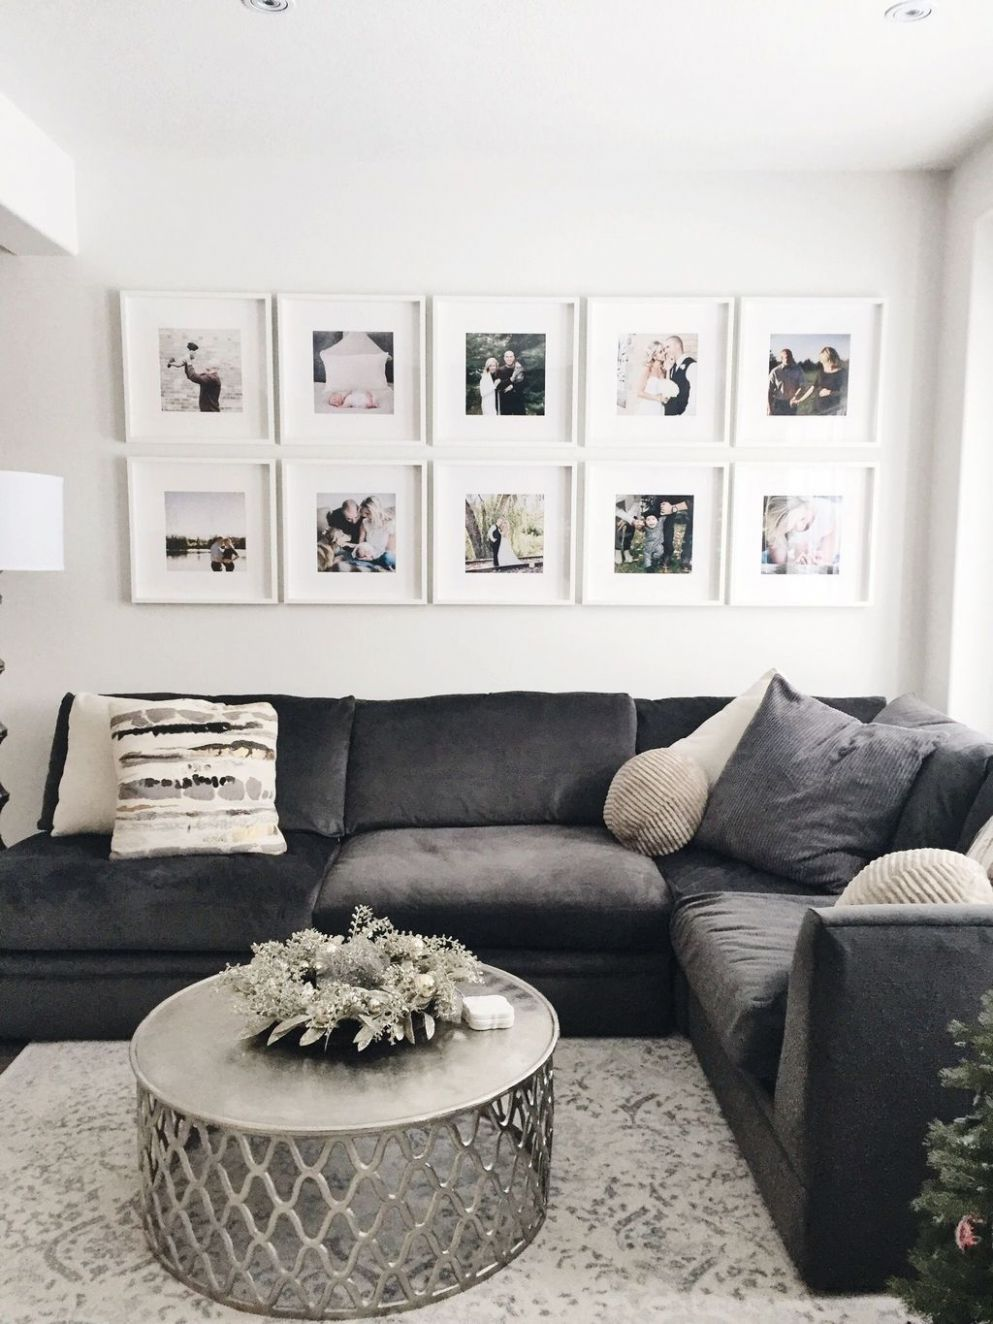 8 Awesome Gallery Wall Design Ideas | Home living room, Living ...